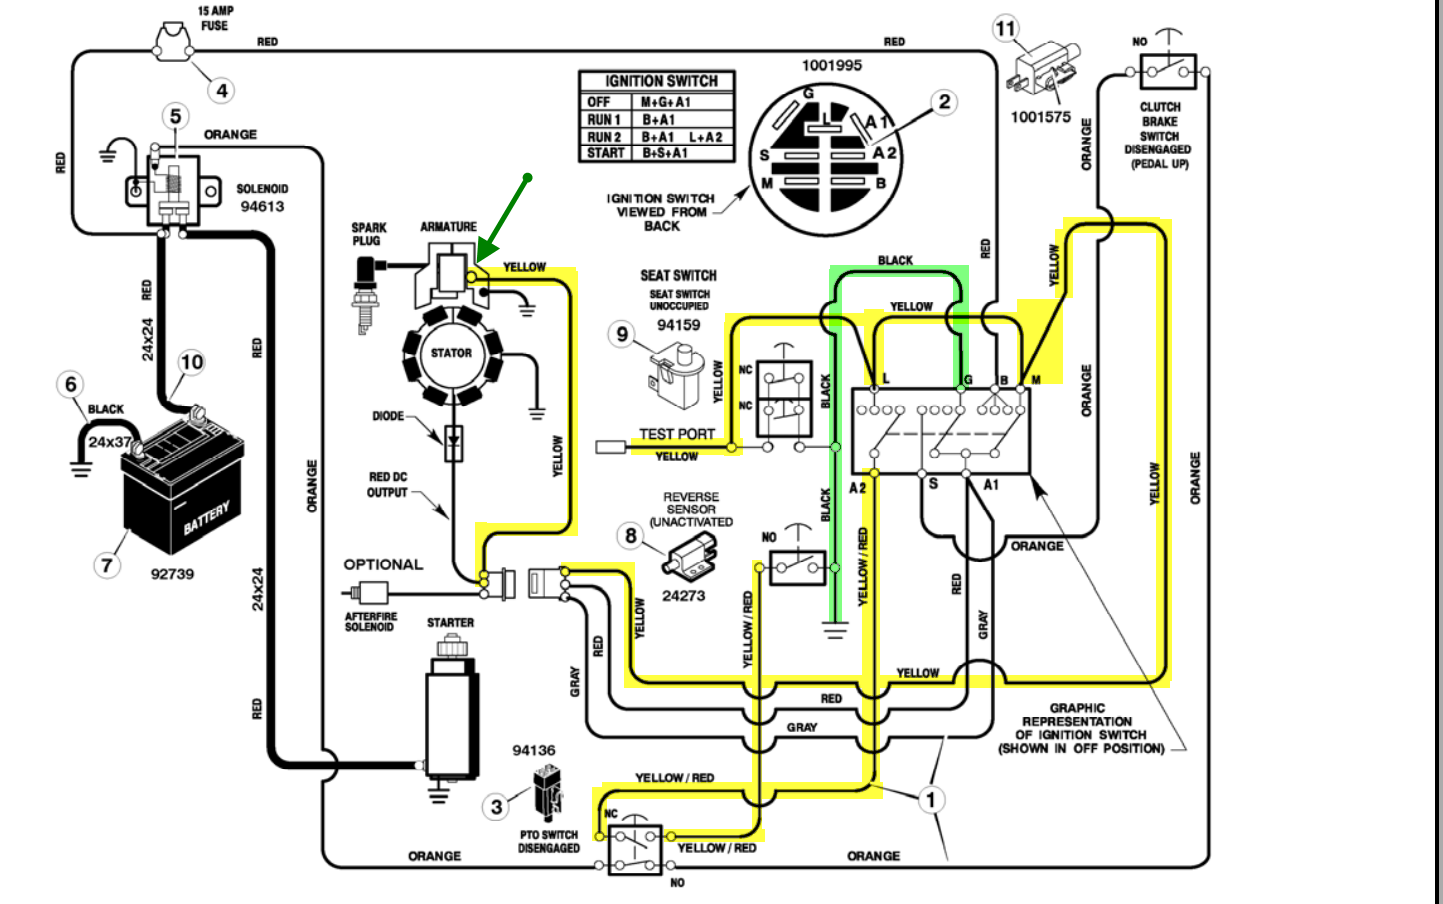 GR_4794] Wiring Diagram On Wiring Diagram For Briggs And Stratton 14 5 Hp  Download DiagramBasi Apan Pneu Tzici Rect Mohammedshrine Librar Wiring 101